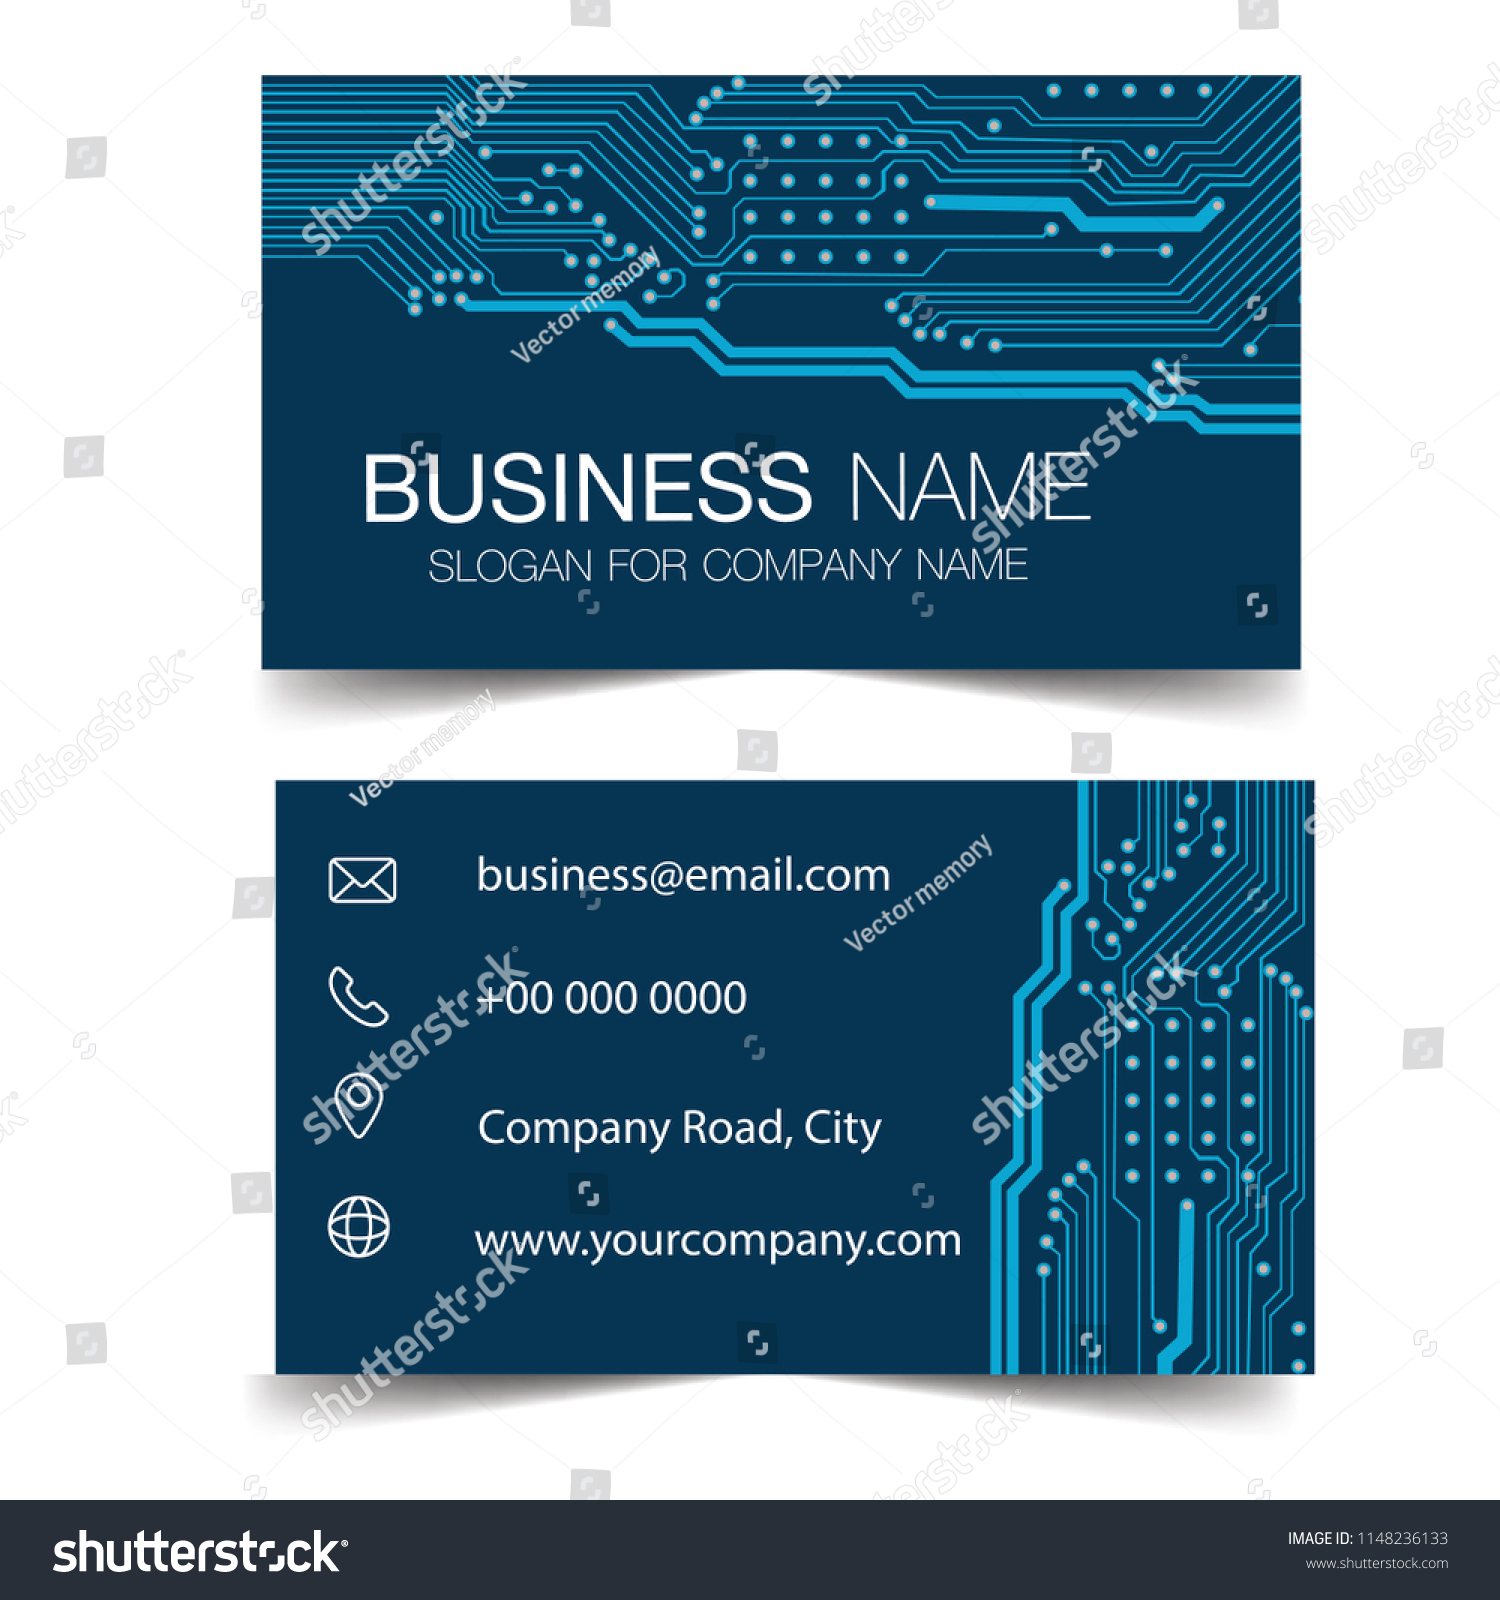 Business Card Circuit Board Electronic Computer Stock Vector Diagram Layout Hardware Technology Template Design In Rectangle